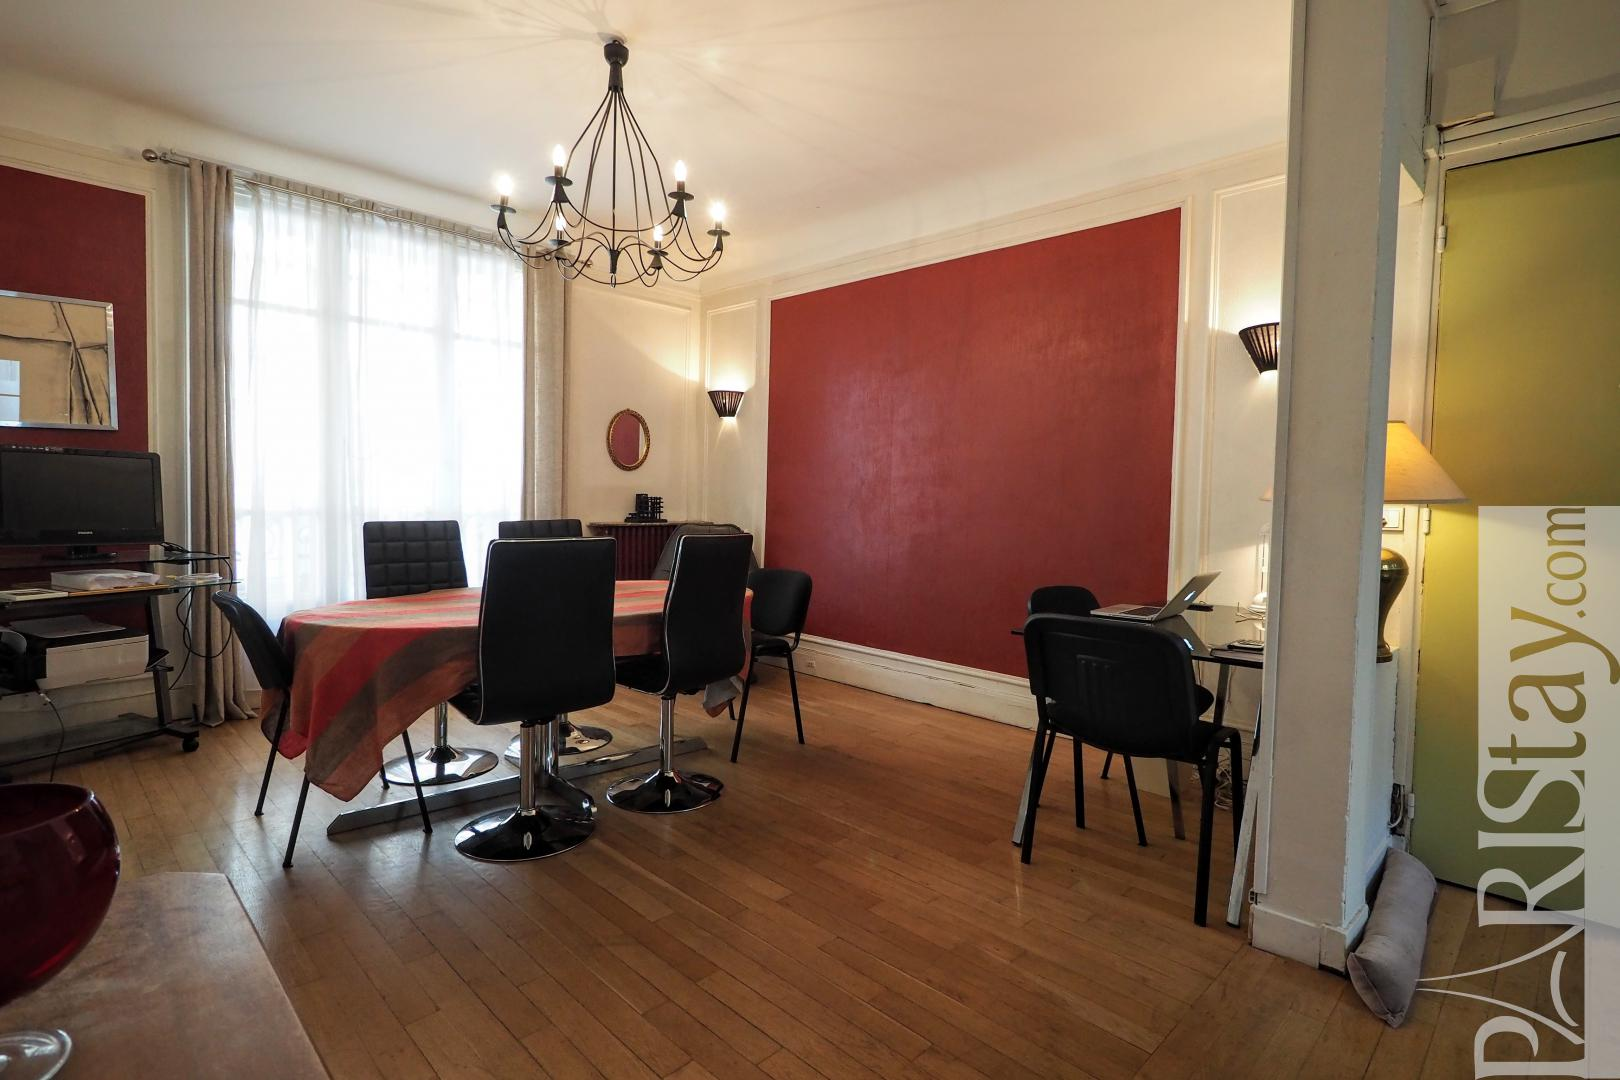 Paris flat for rent 2 bedroom apartment rental, convention